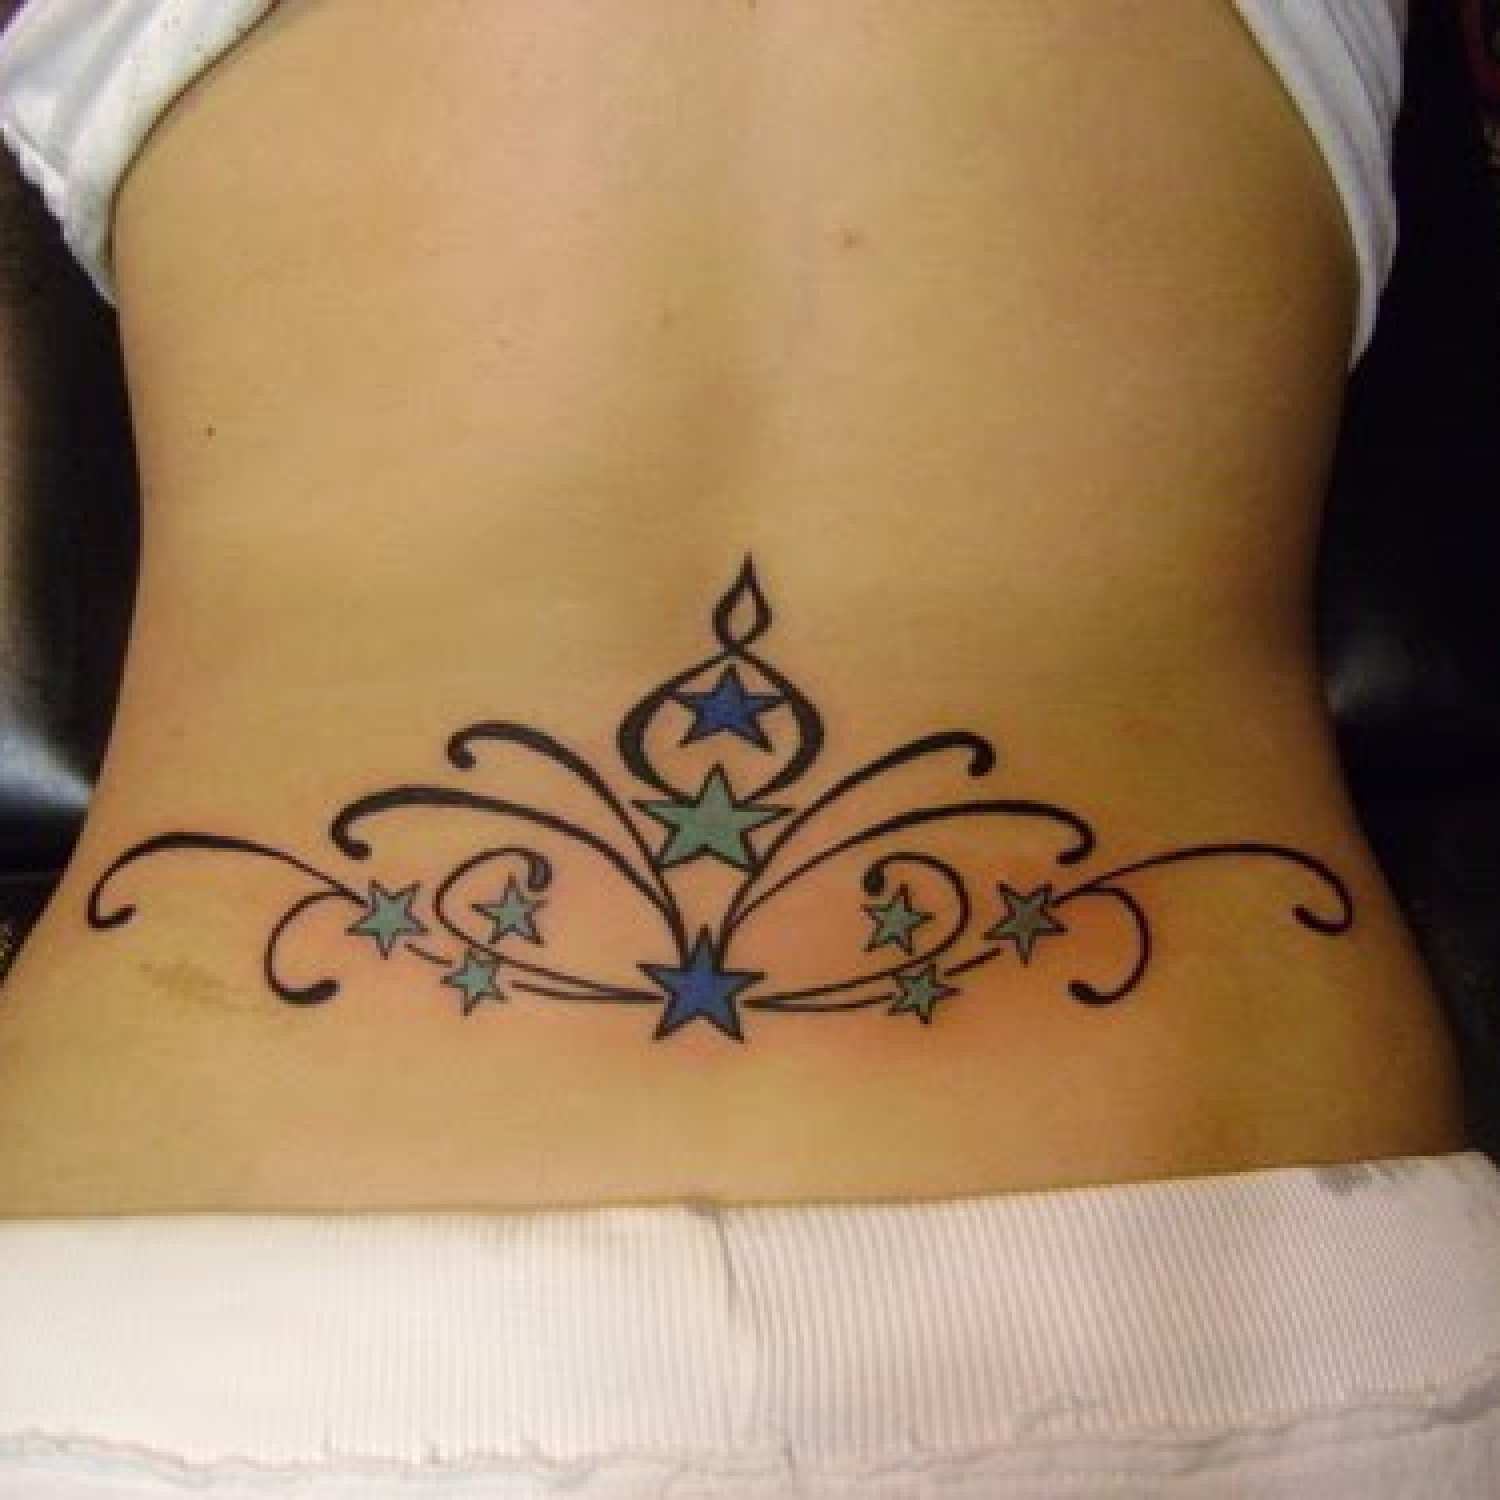 Girl Lower Back Tattoo Designs 30 Awesome Lower Back Tattoos For Girls | Tattoo Collections